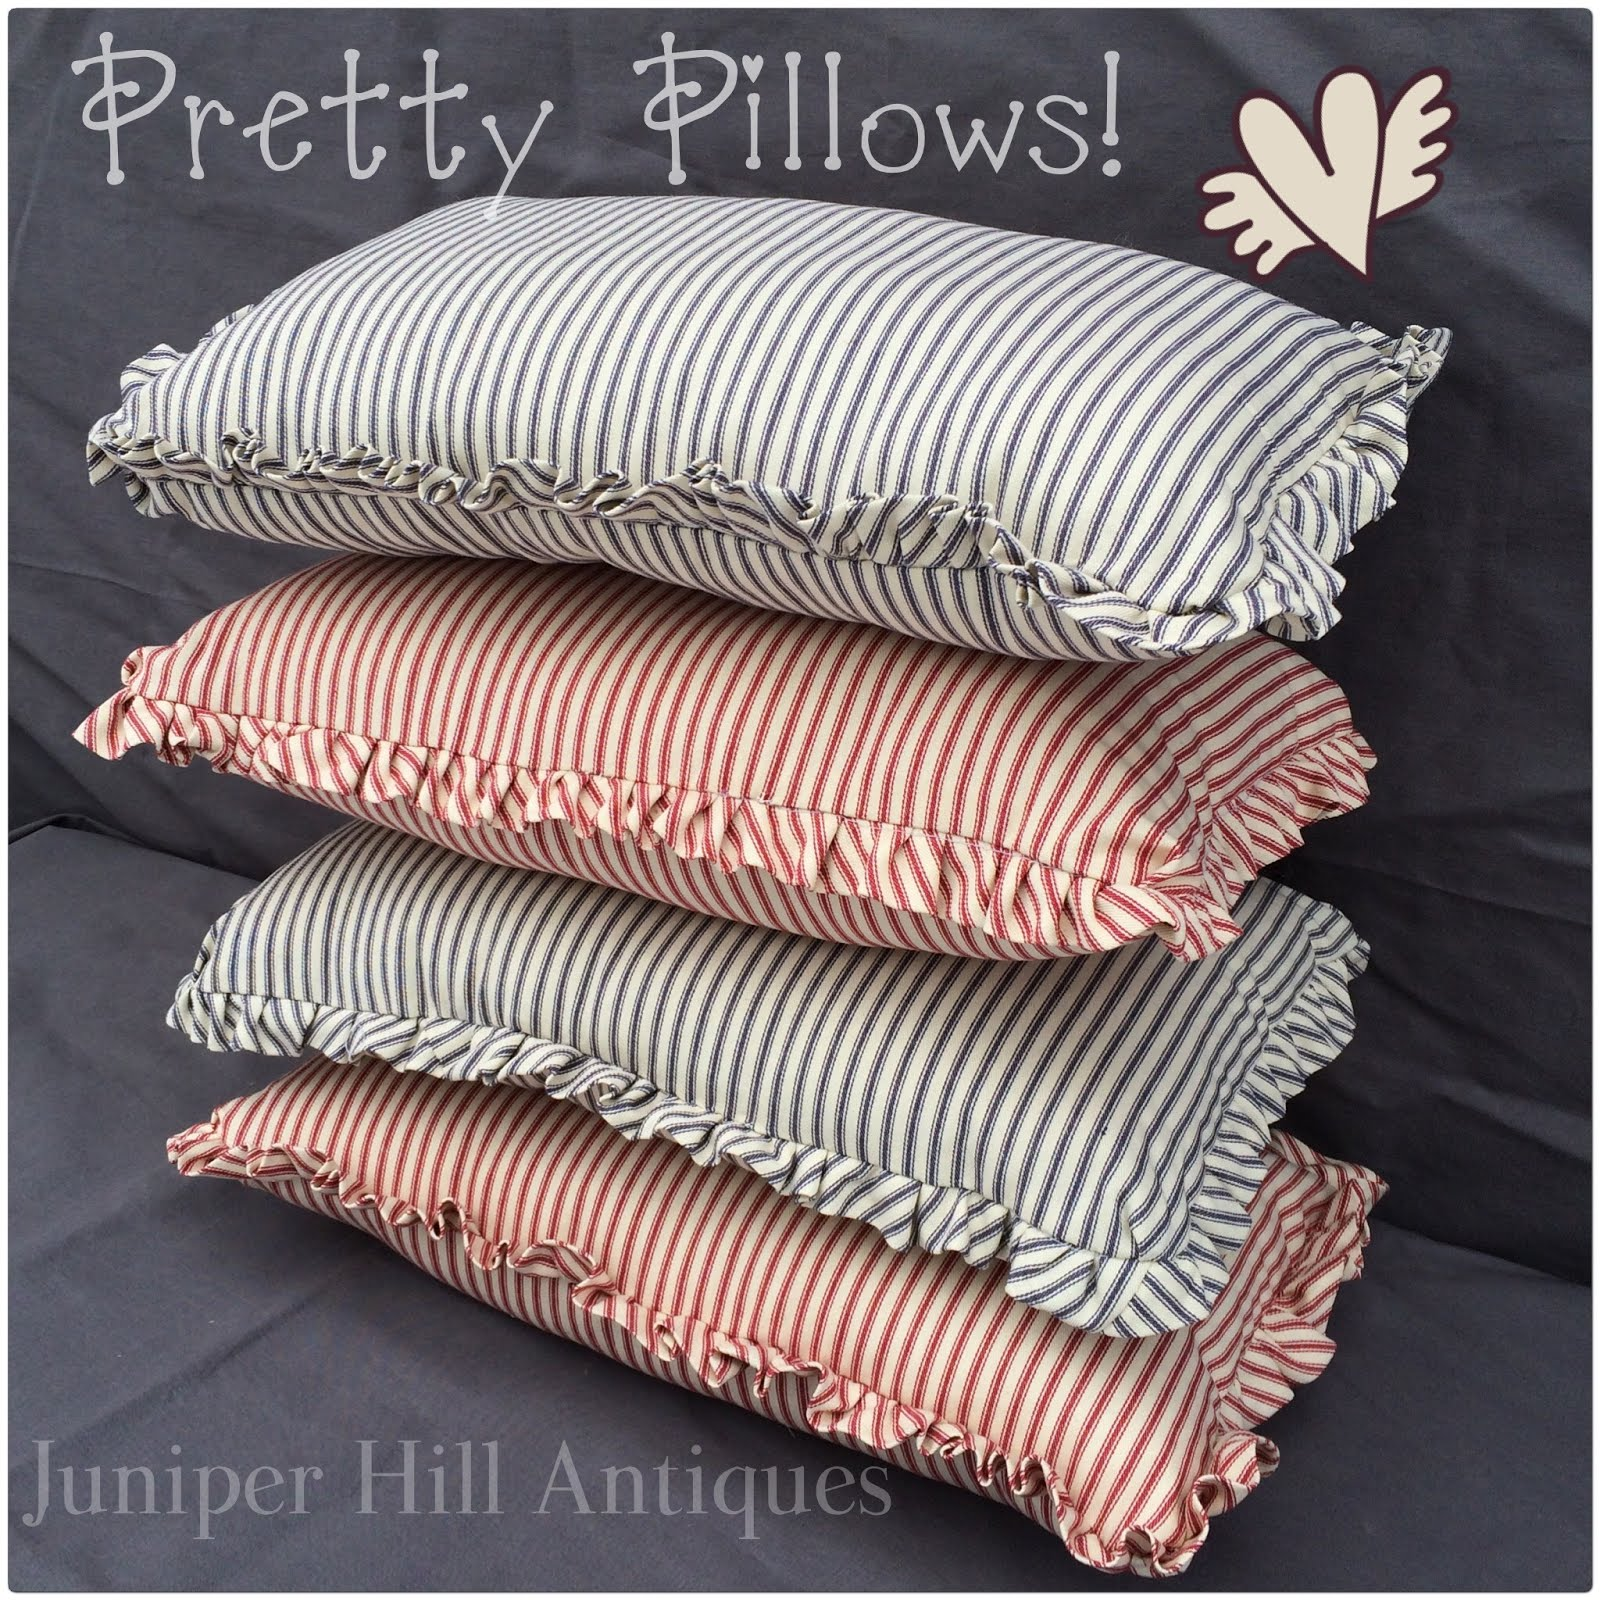 Decorative Pillows!